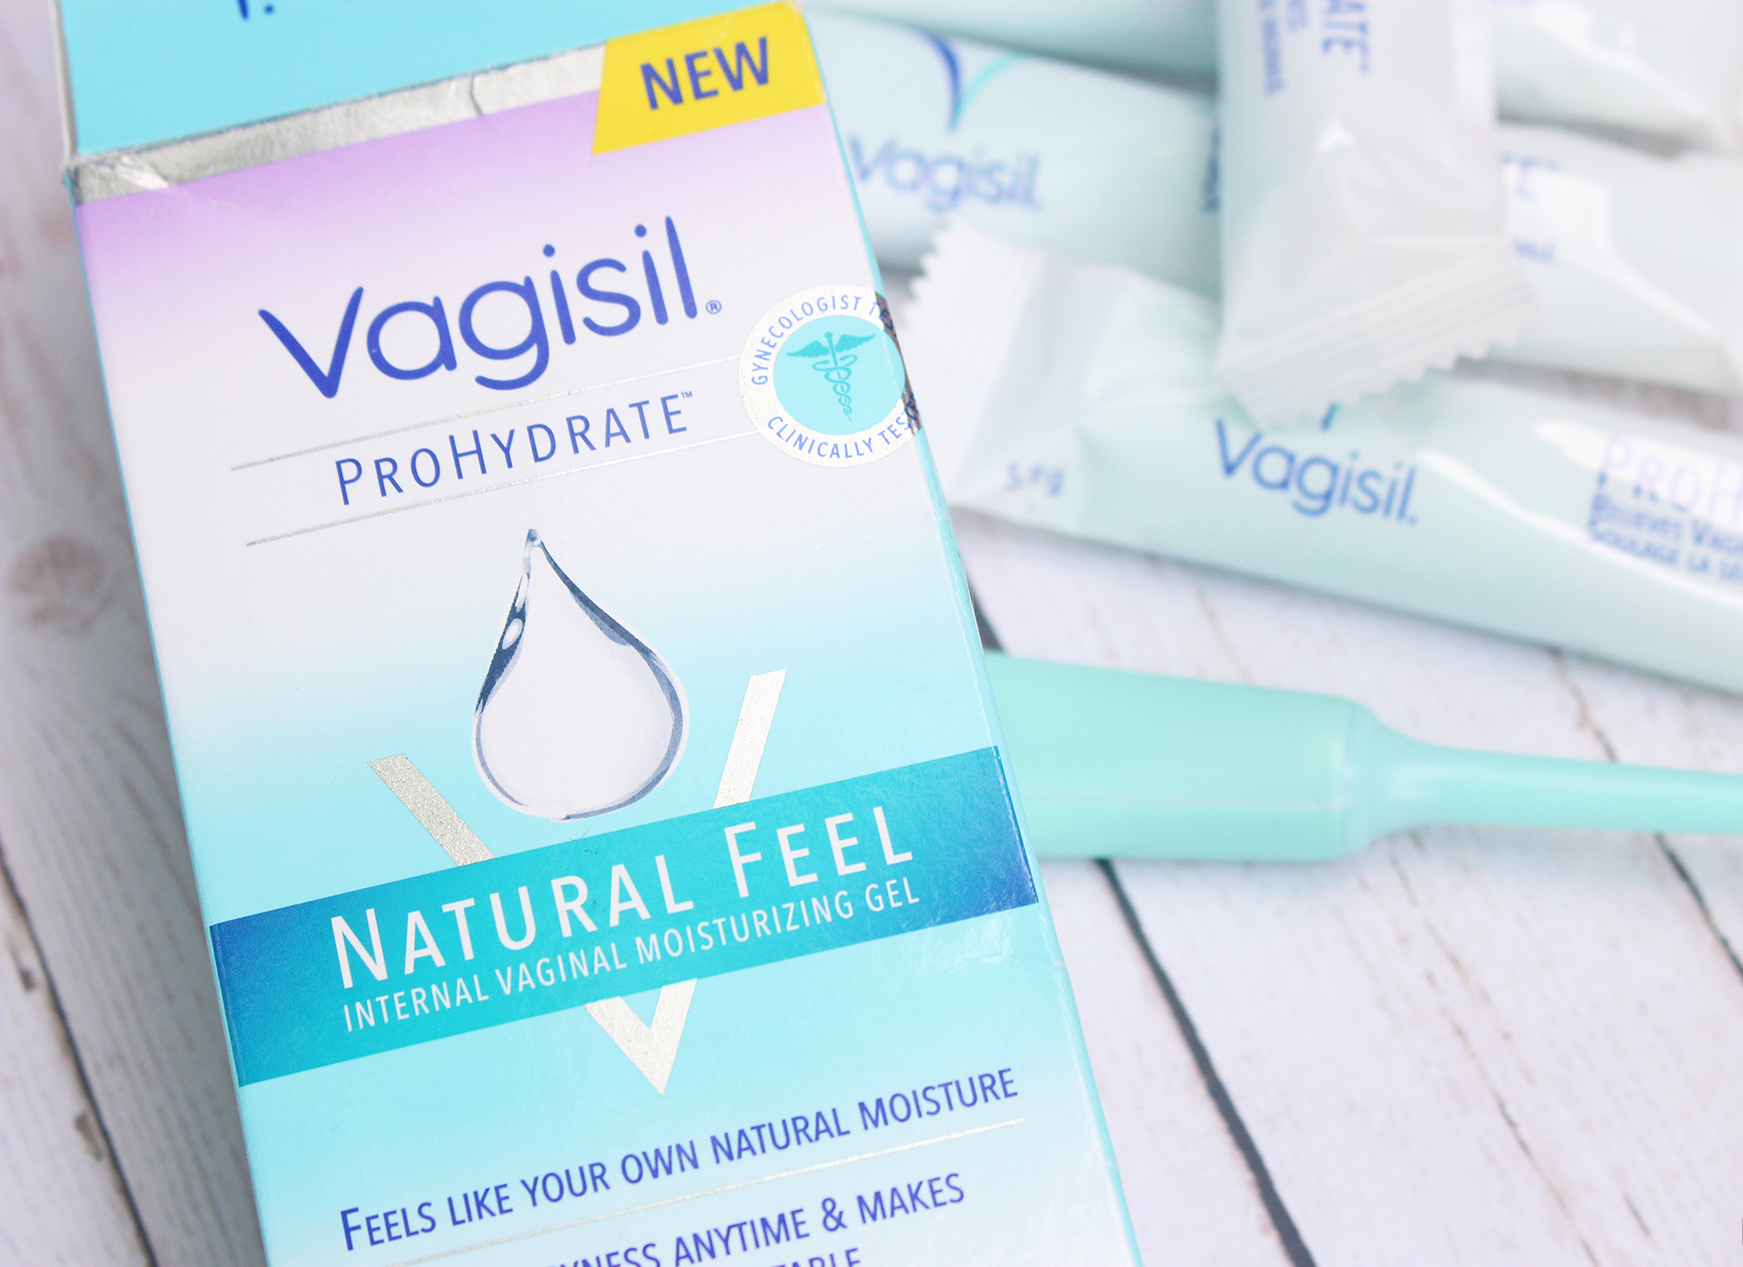 Ladies, Always Feel Your Best With Vagisil ProHydrate Natural Feel Moisturizing Gel